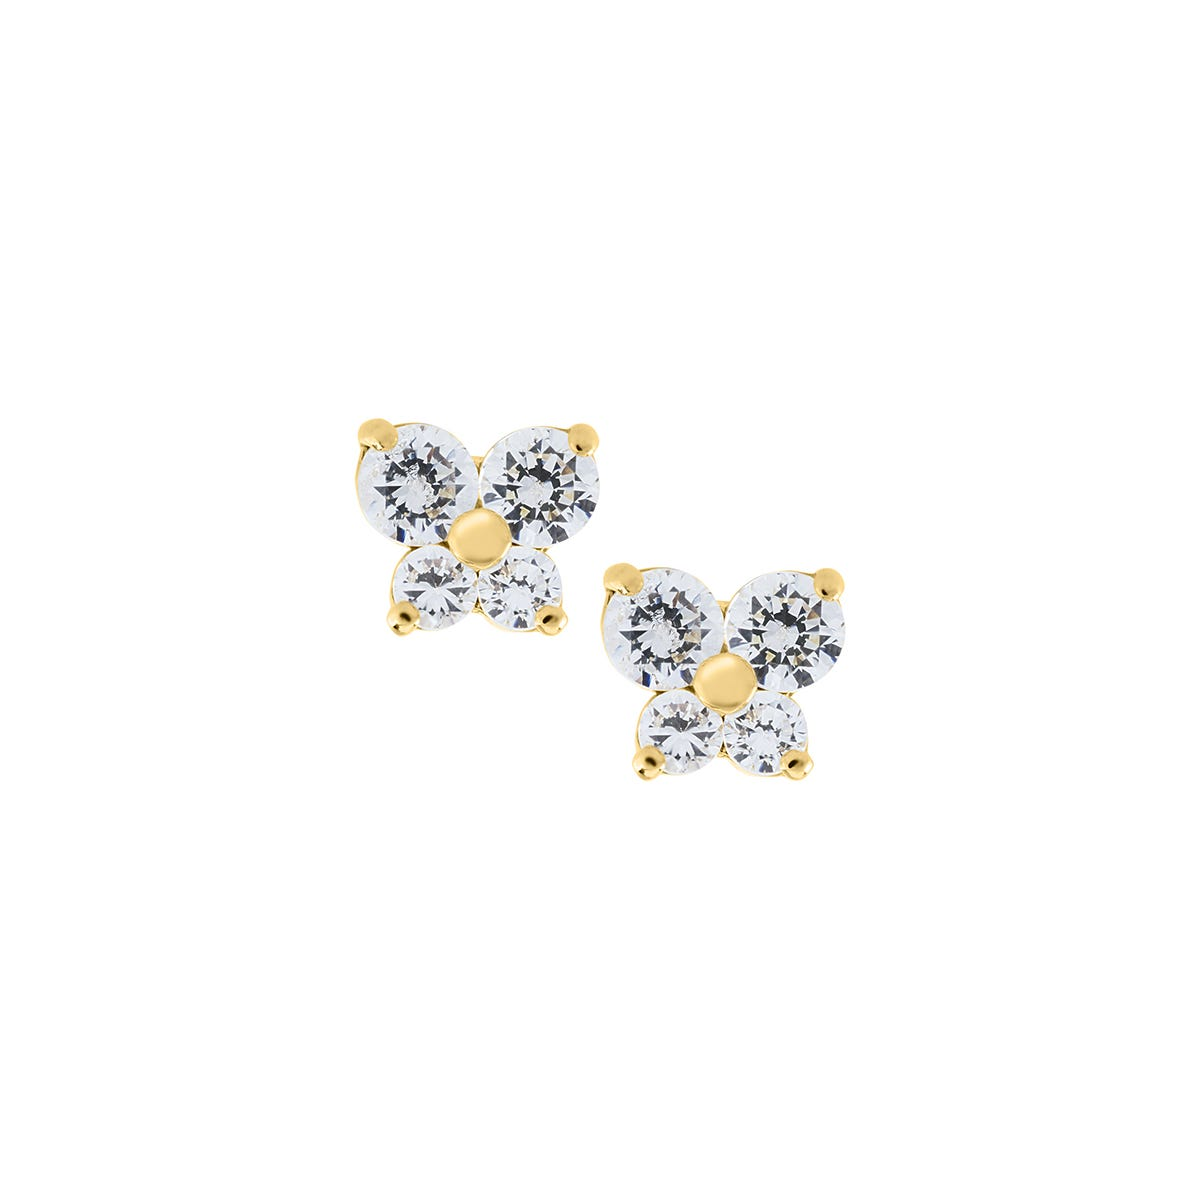 Baby Children S White Crystal Erfly Stud Earrings In 14k Yellow Gold